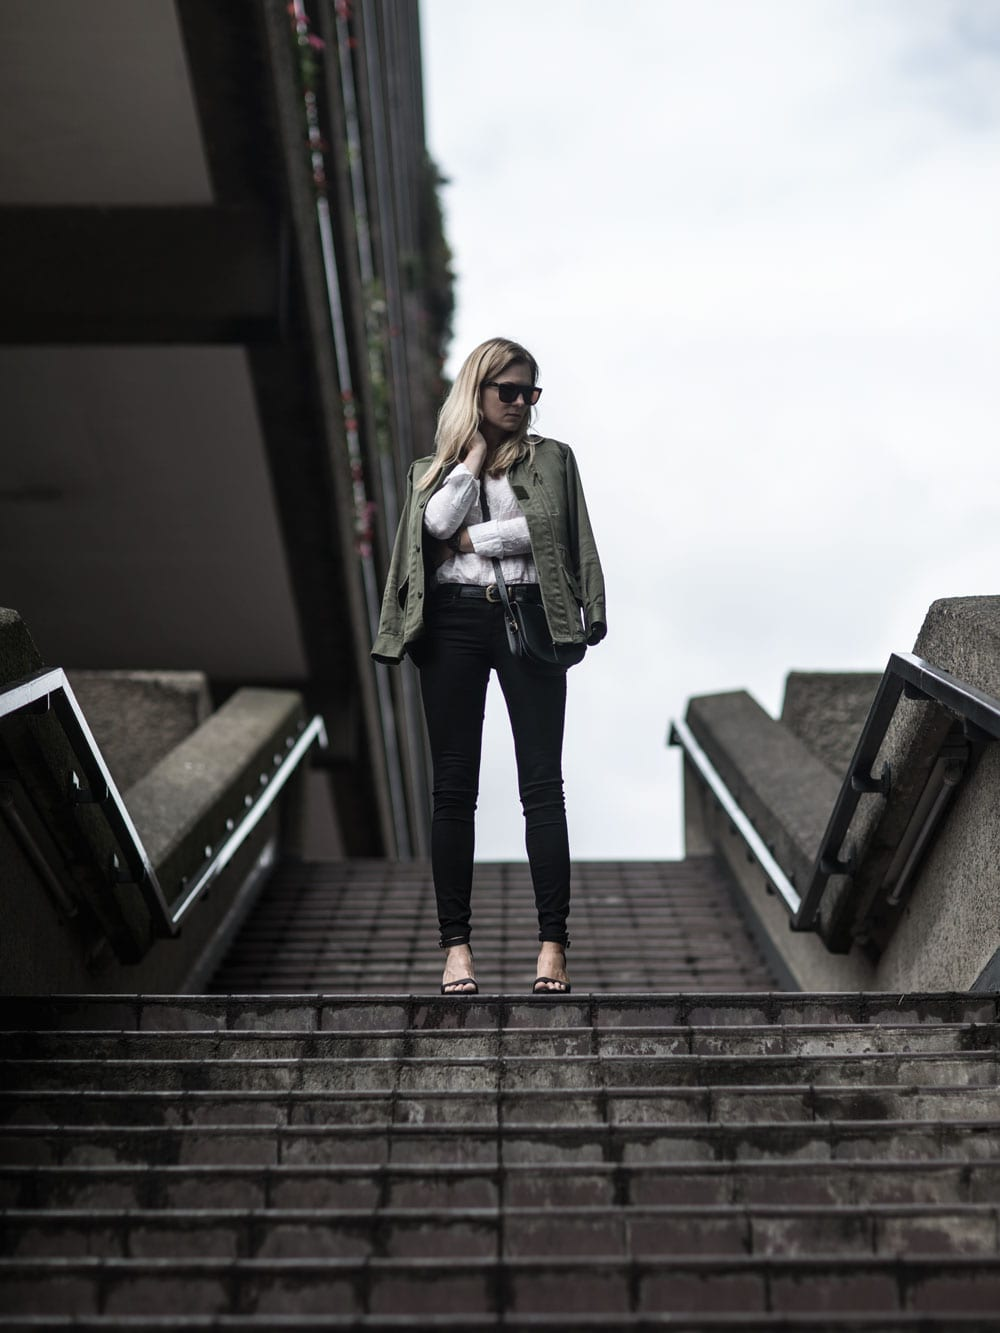 Style&Minimalism | It's Personal | AYR Jeans & Silk Top at The Barbican